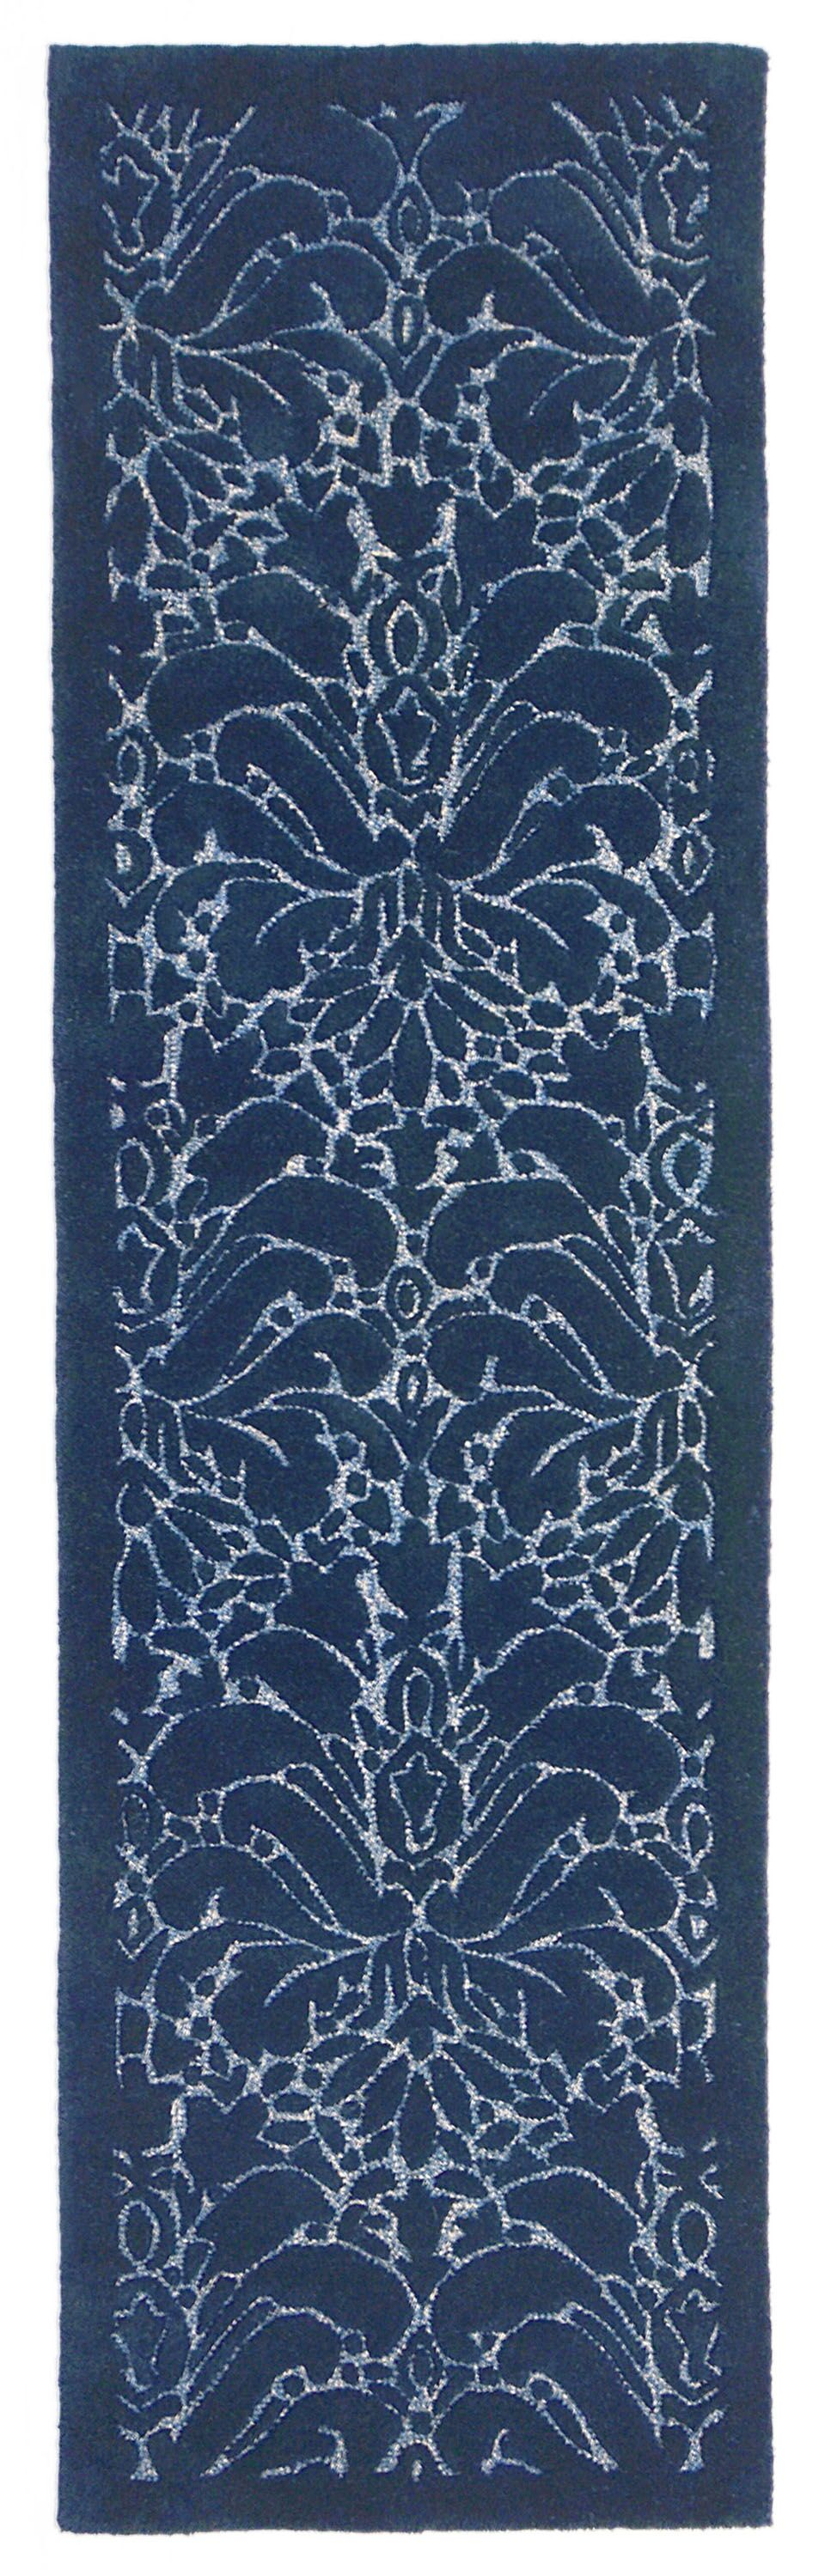 Tenorio Hand-Tufted Blue Area Rug Rug Size: Runner 2'3